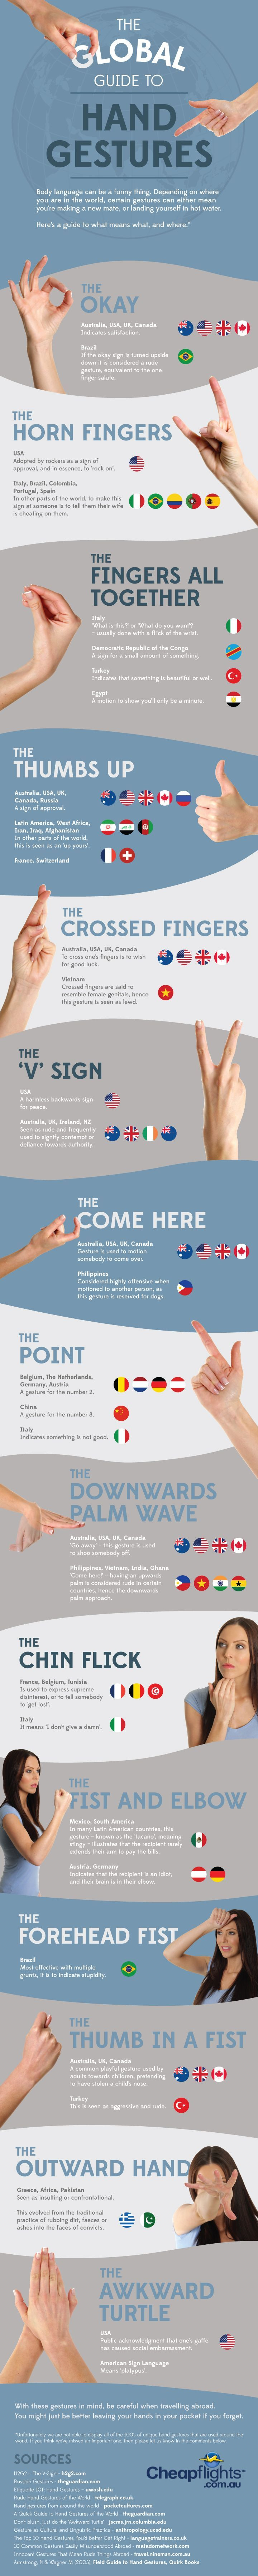 Infographic: The Global Guide to Hand Gestures